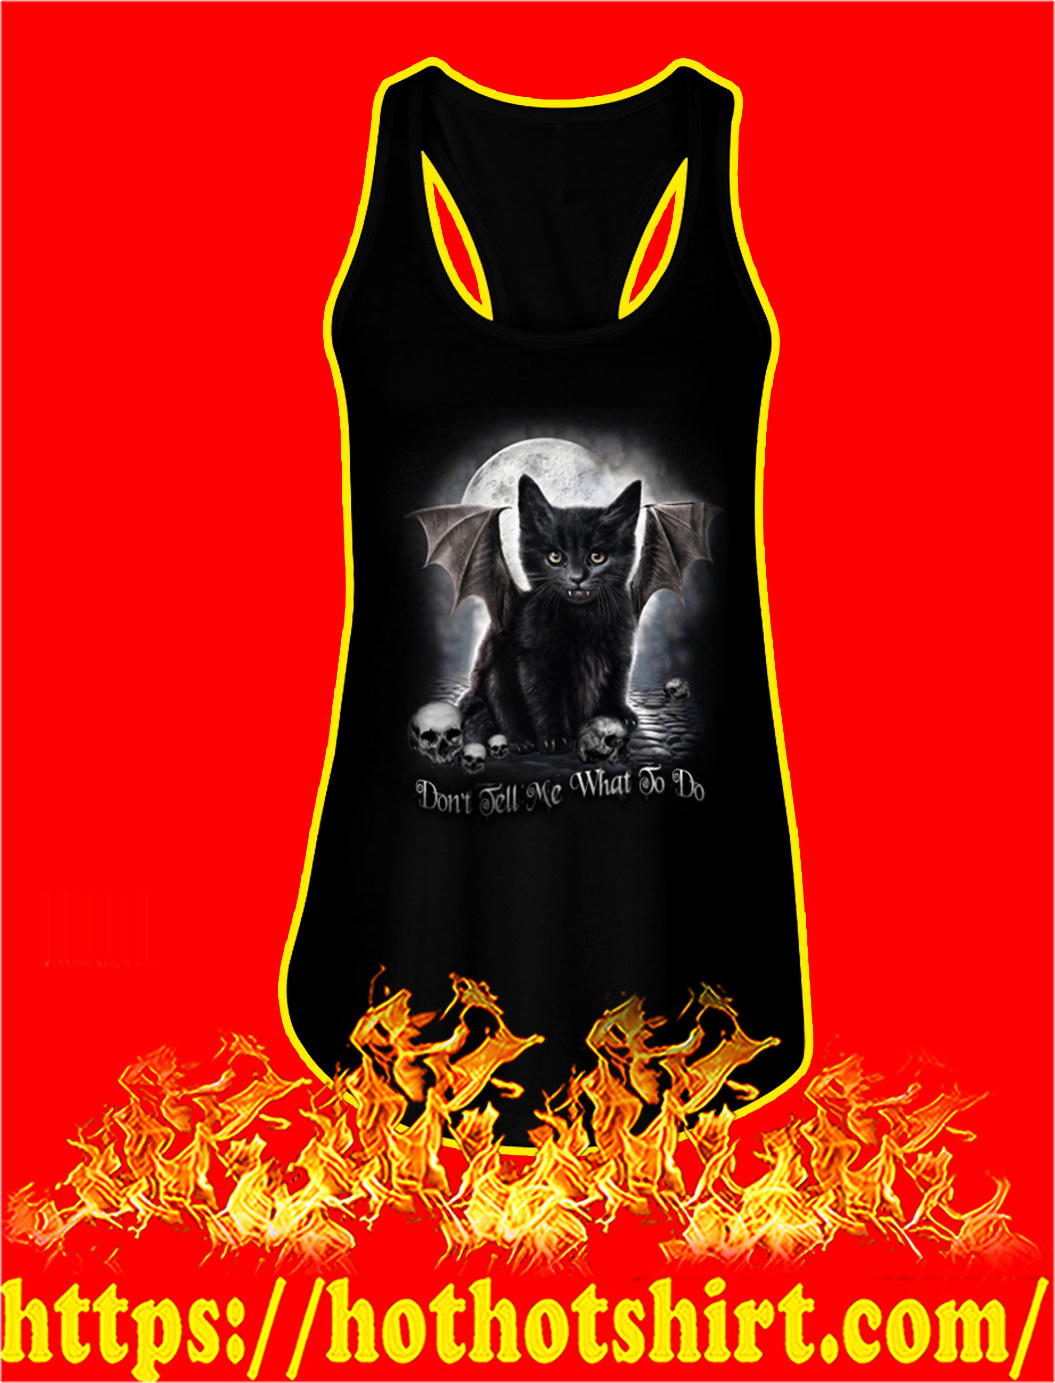 Black cat don't tell me what to do tank top